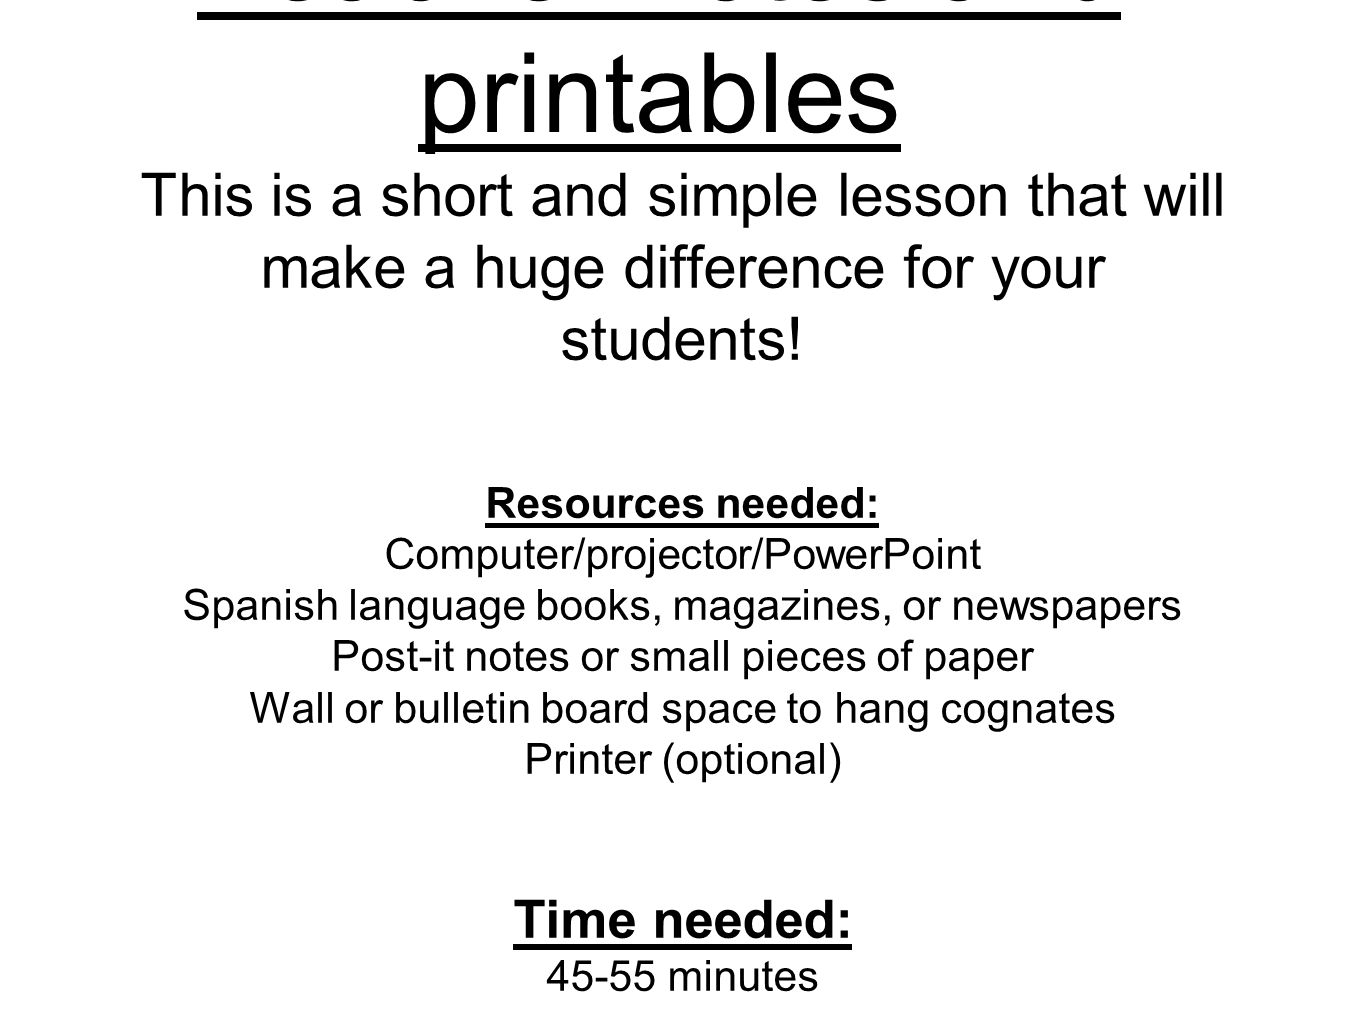 Teacher notes and printables